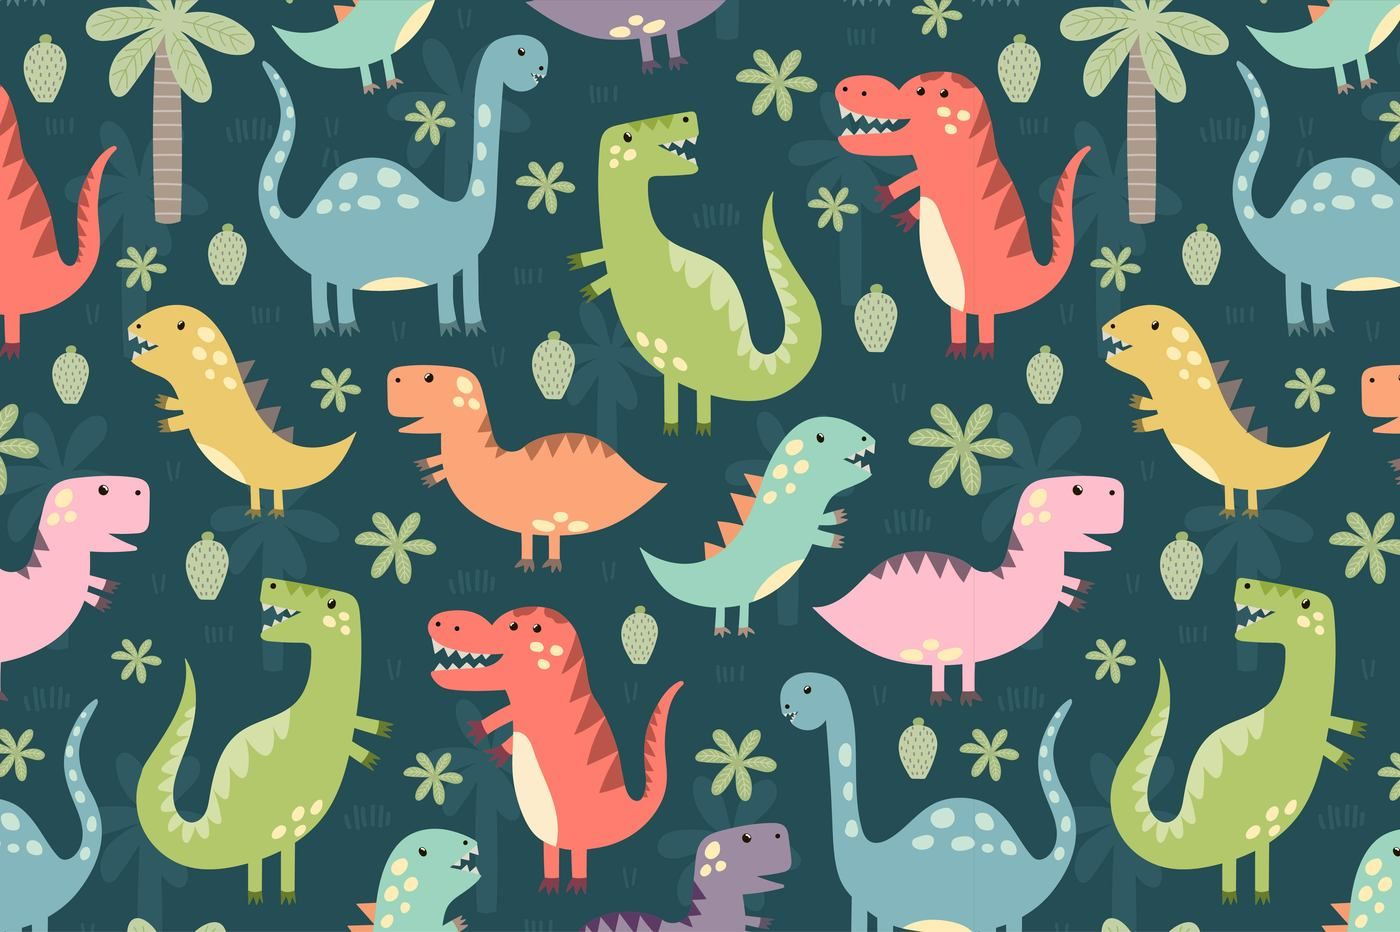 Dino Party Patterns Illustrations By Juliyas Art